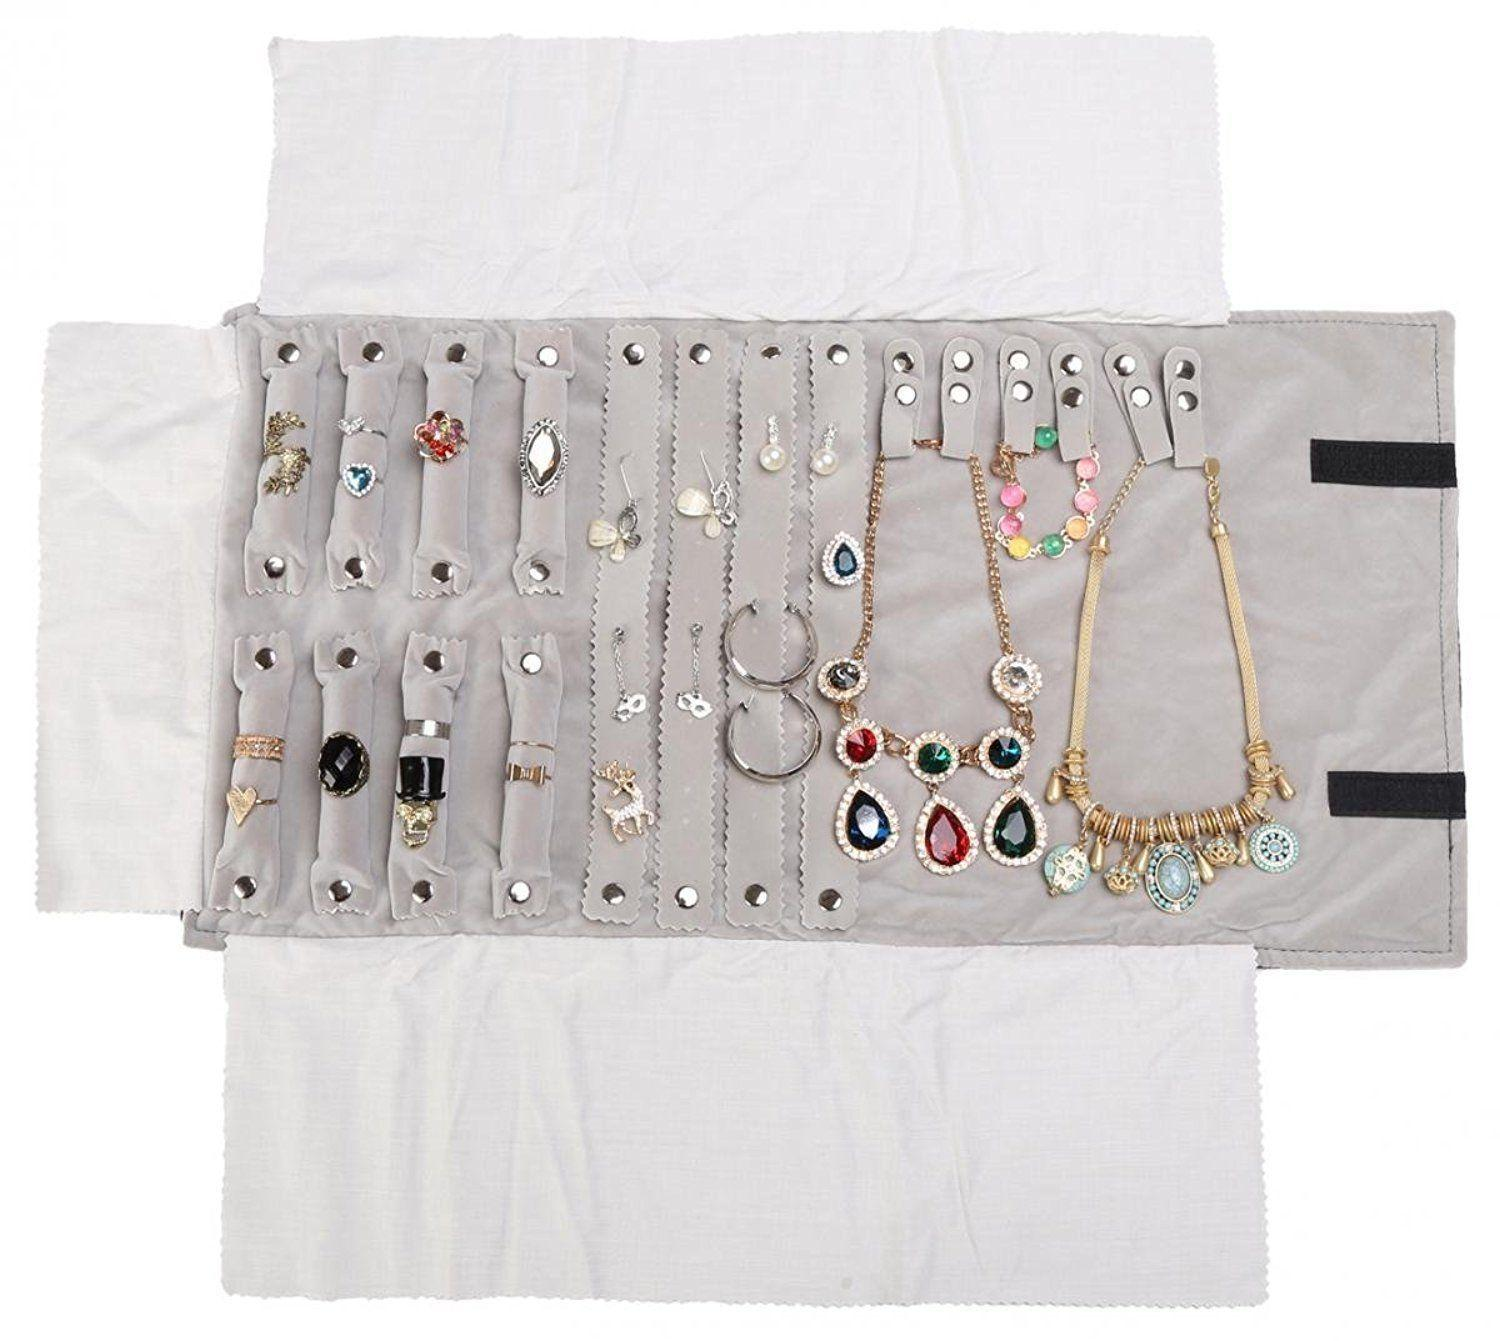 2020 Luxury Purpose Jewelry Roll Bag Storage Bag Earrings Necklace Roll Organizer T190629 From Linjun07 13 38 Dhgate Com